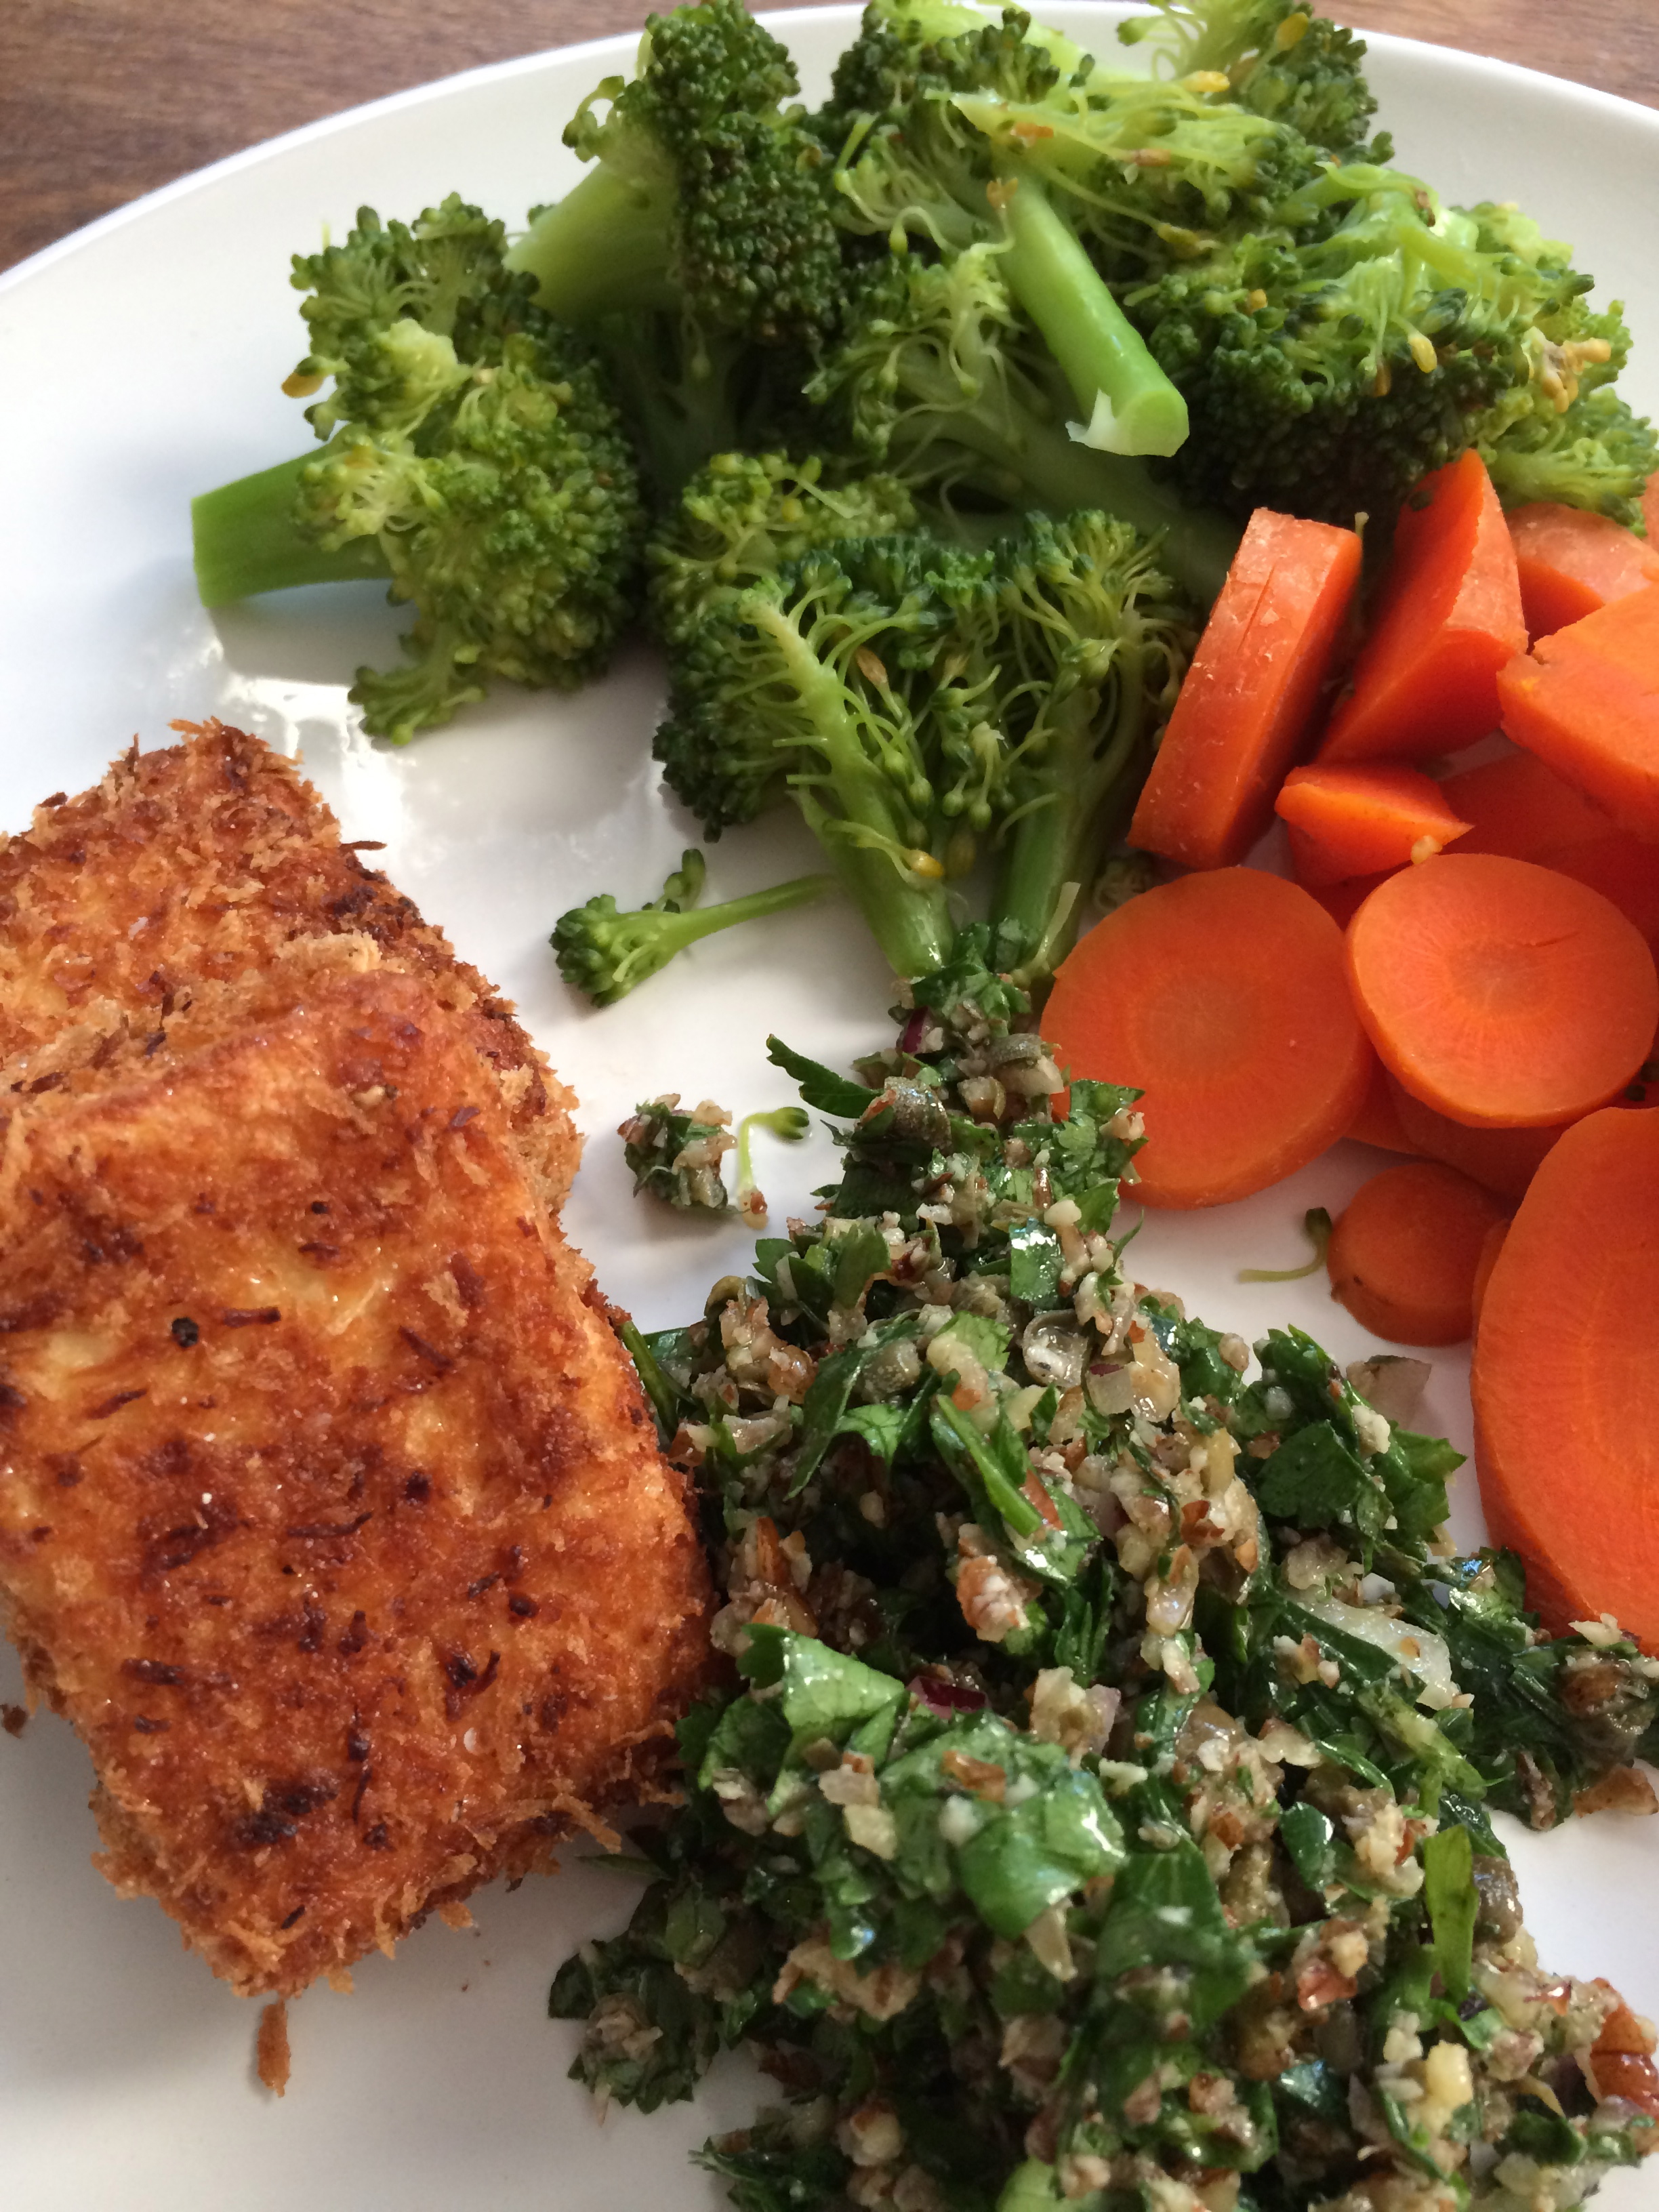 My dinner: southern fried tofu with salsa verde, and streamed carrots and broccoli.